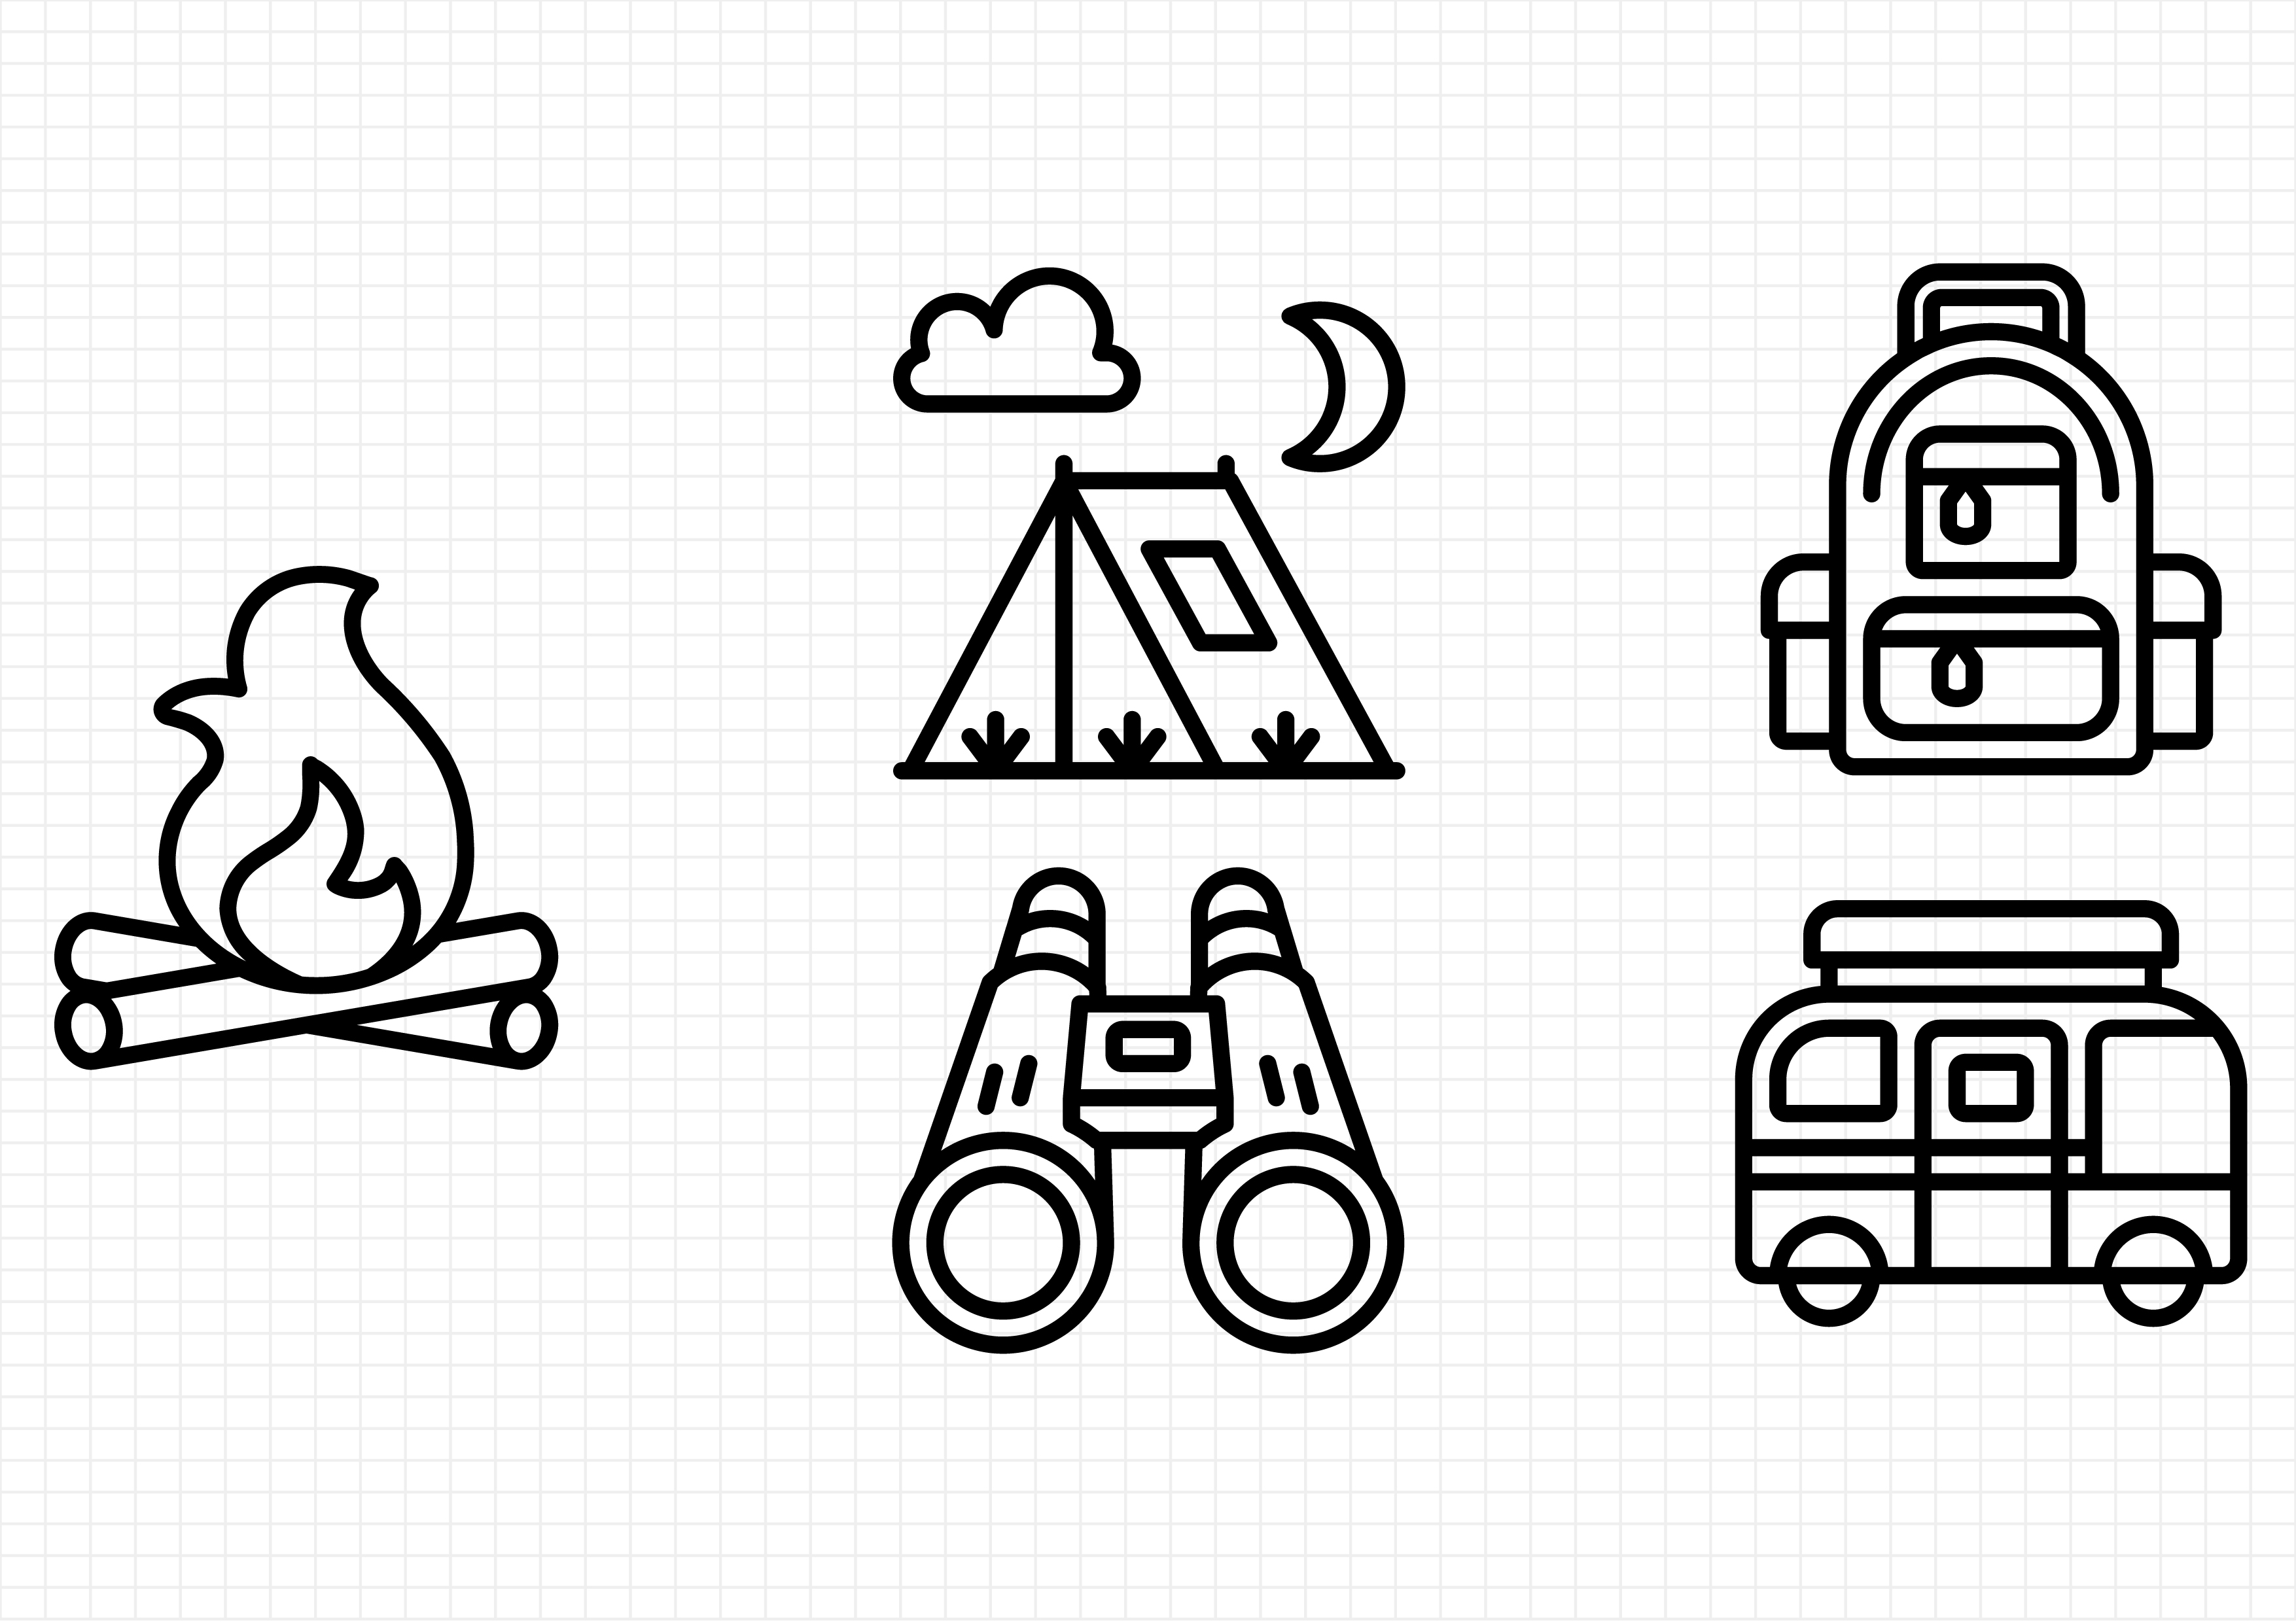 Download Free Camping Graphic By Beryladamayu Creative Fabrica for Cricut Explore, Silhouette and other cutting machines.